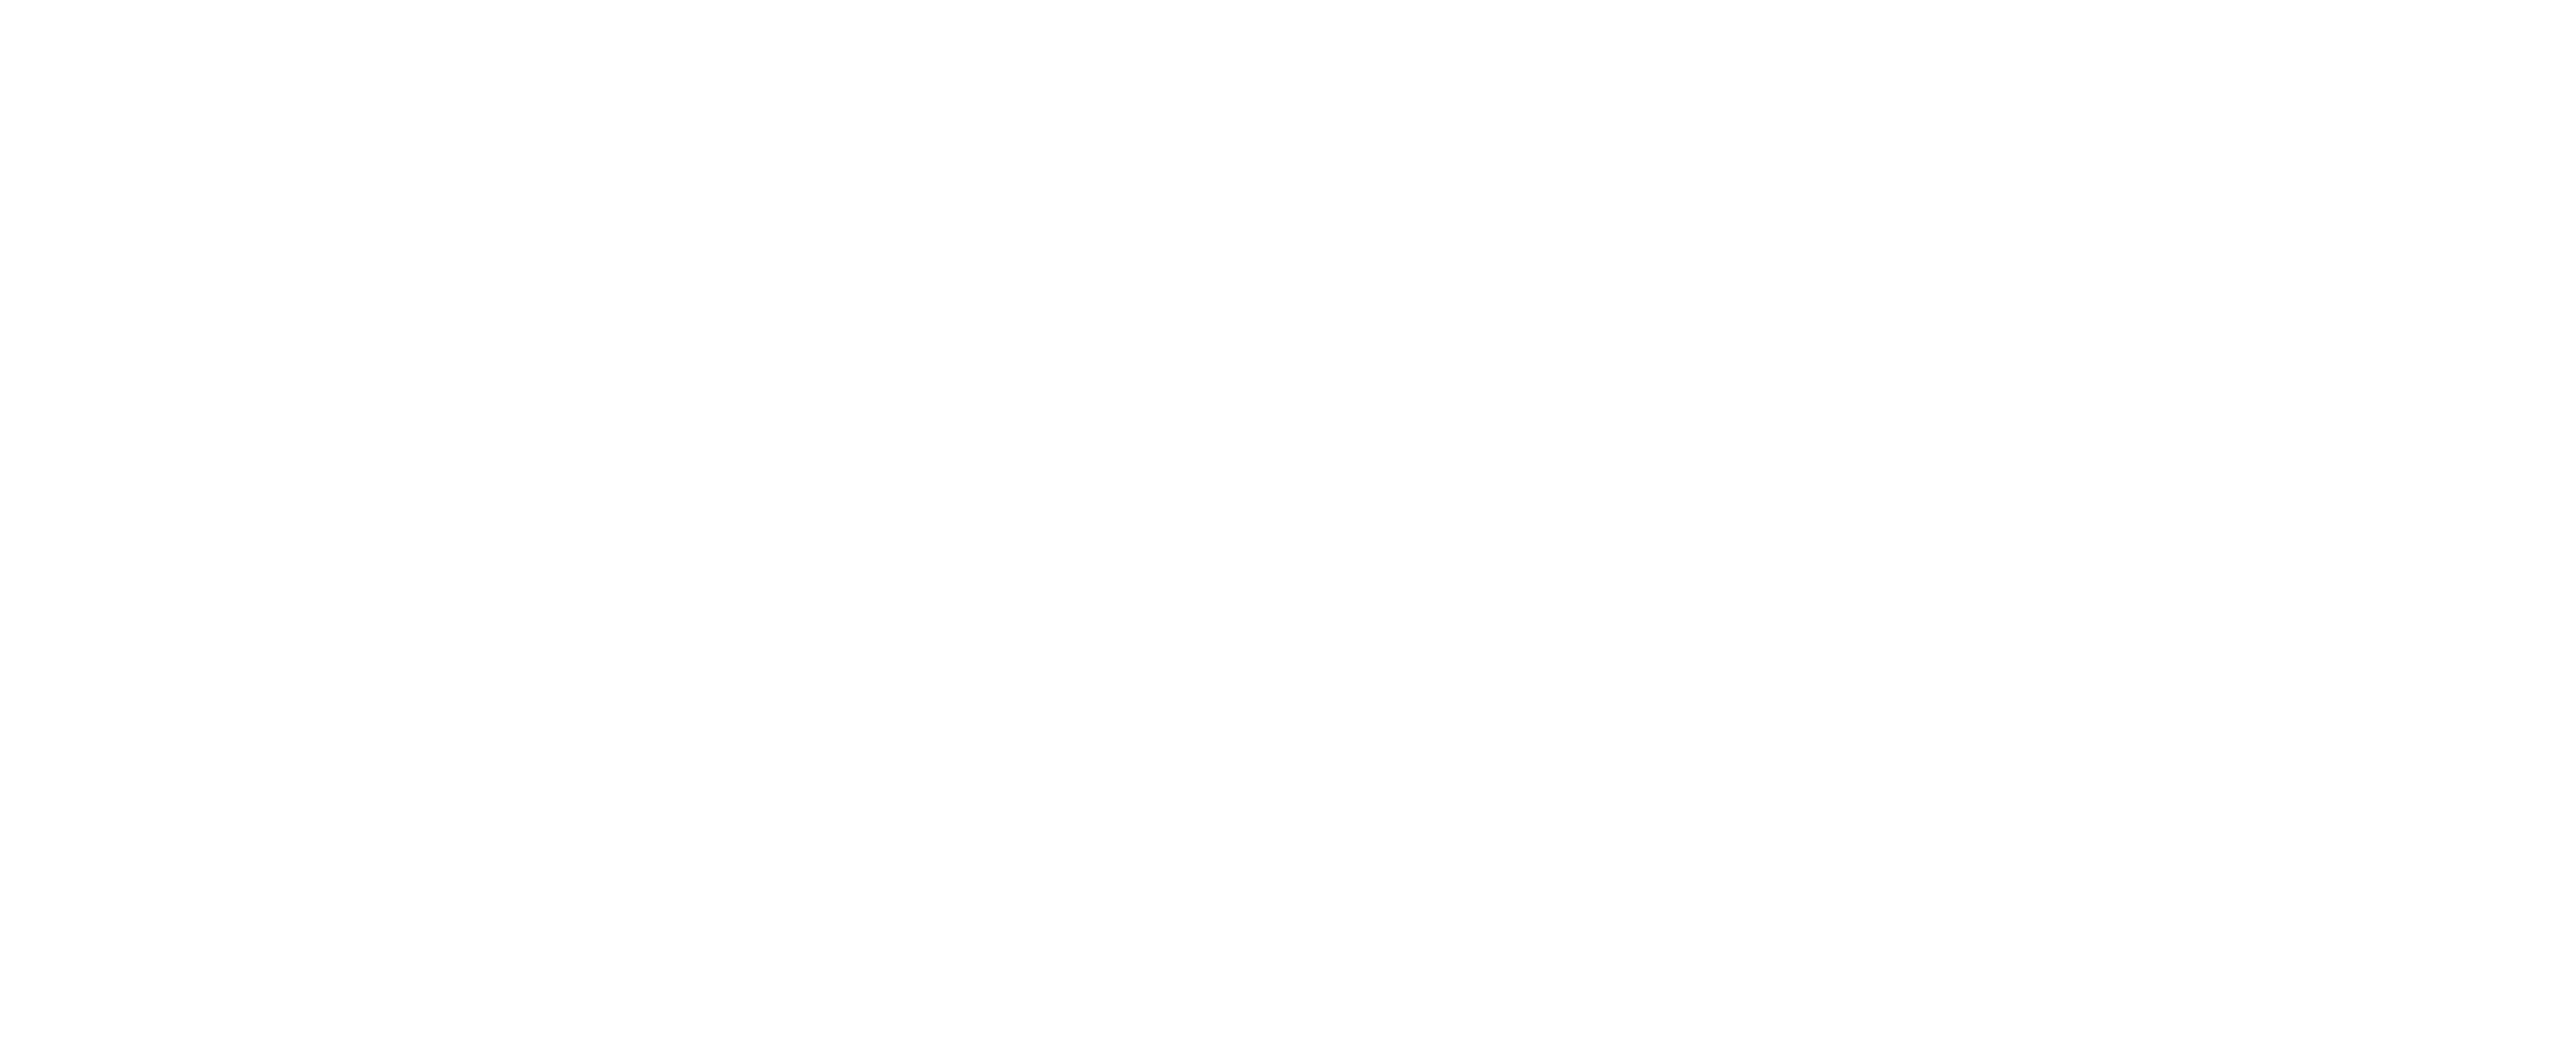 Fast Despatch Logistics